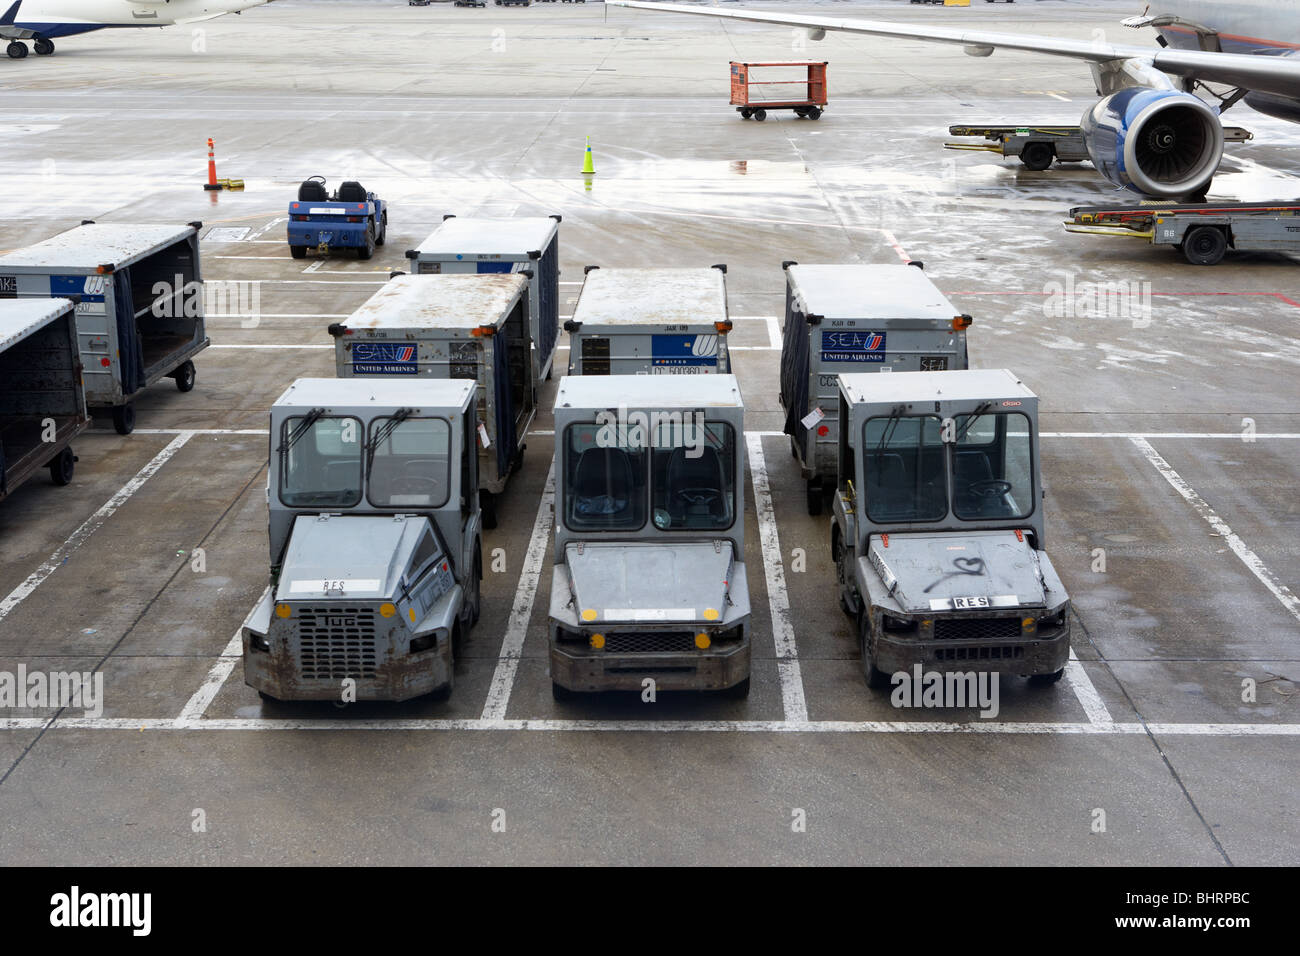 united airlines luggage cars carts parked on a cold wintry day at o'hare international airport chicago usa - Stock Image